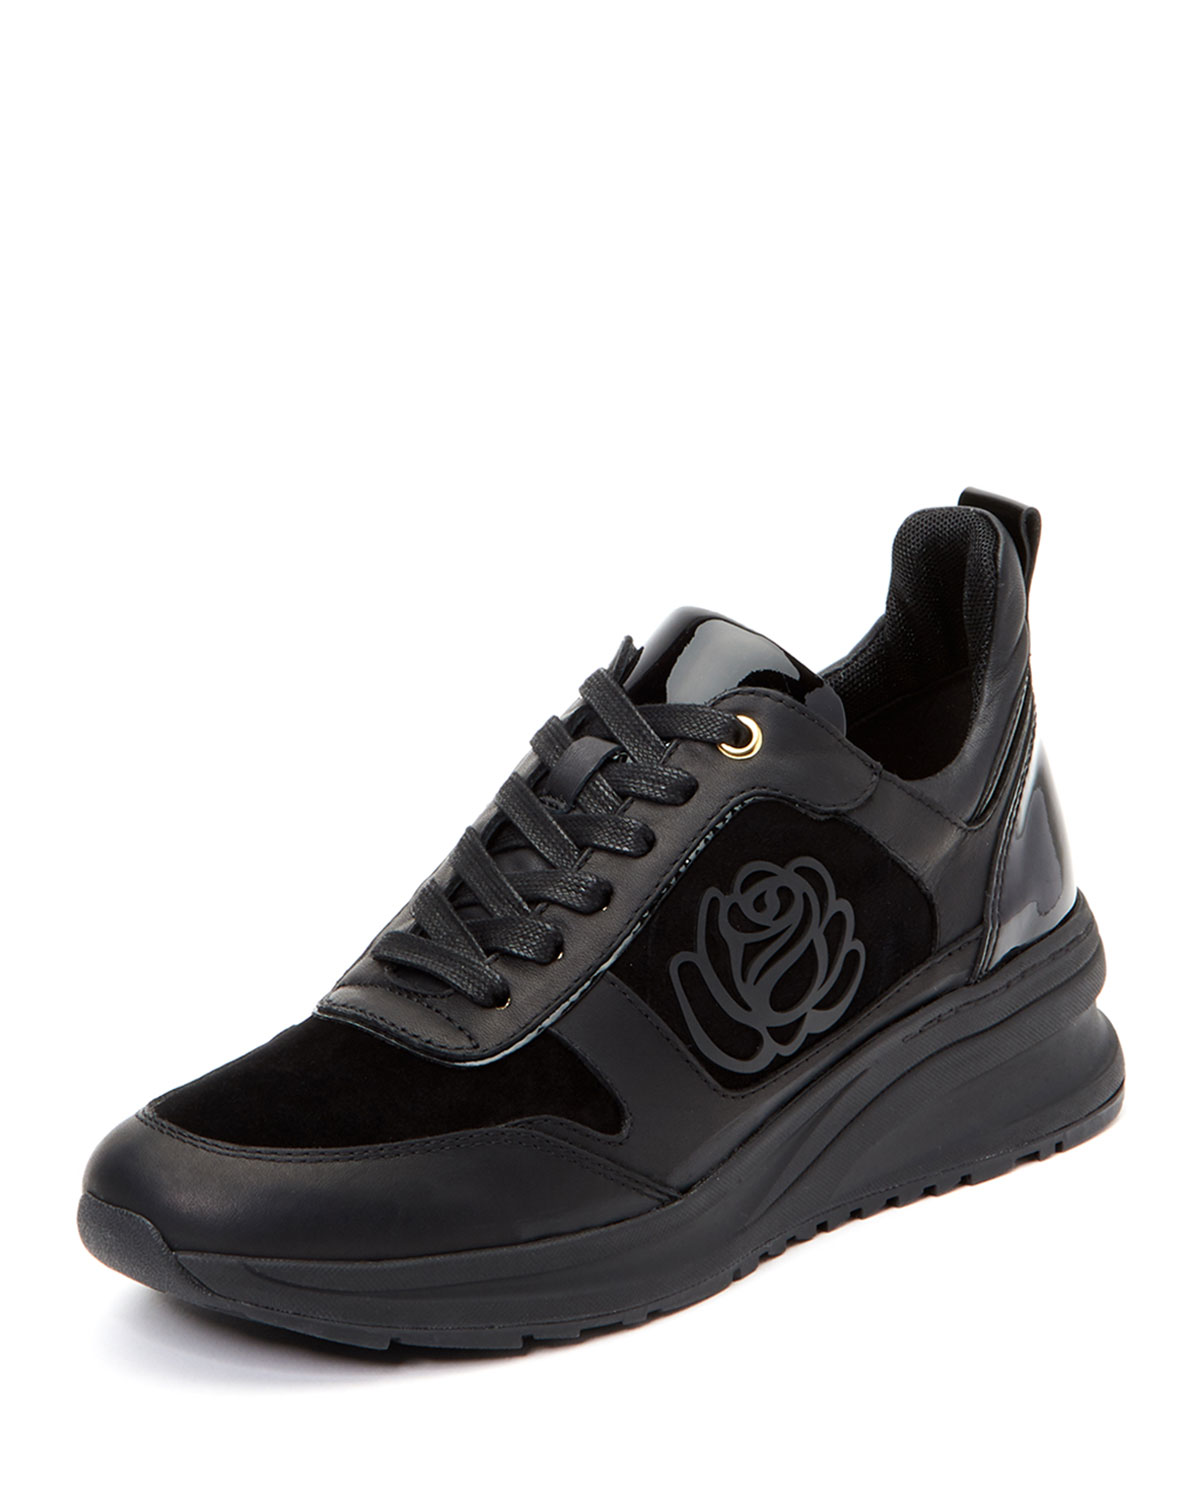 TARYN ROSE ZADIE CHUNKY-SOLE LEATHER TRAINER SNEAKERS